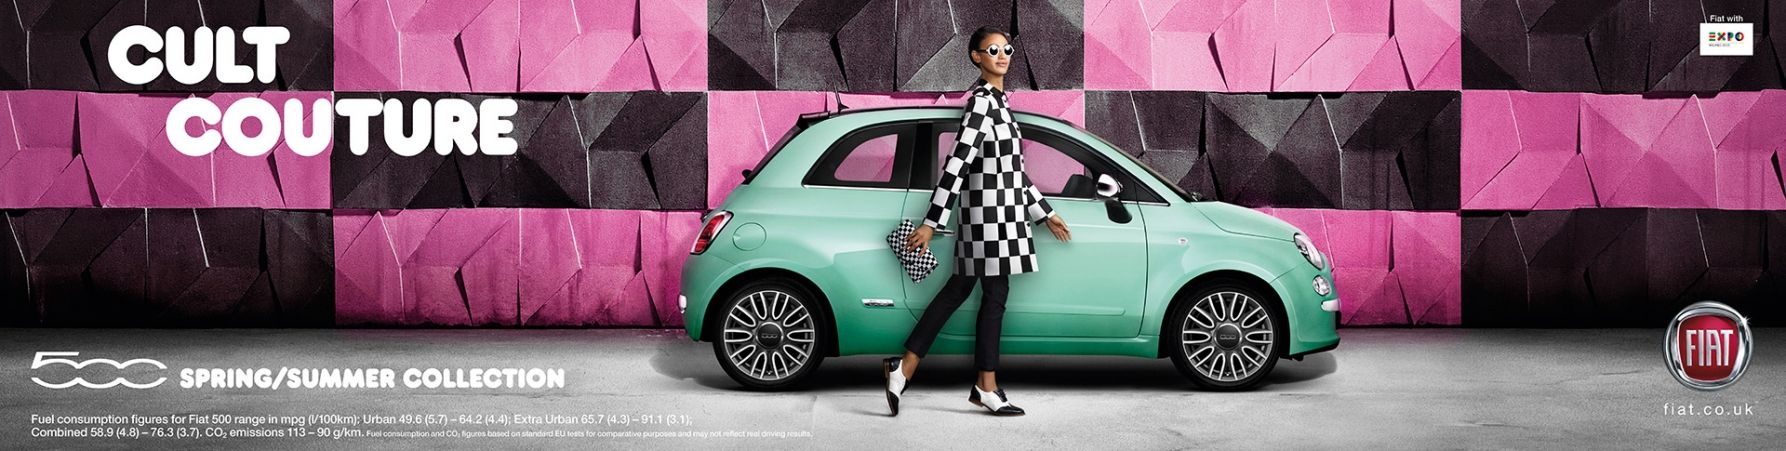 #Commission #Photography #MaxOppenheim #fiat500 #fiat #spring #summer #advert #advertising